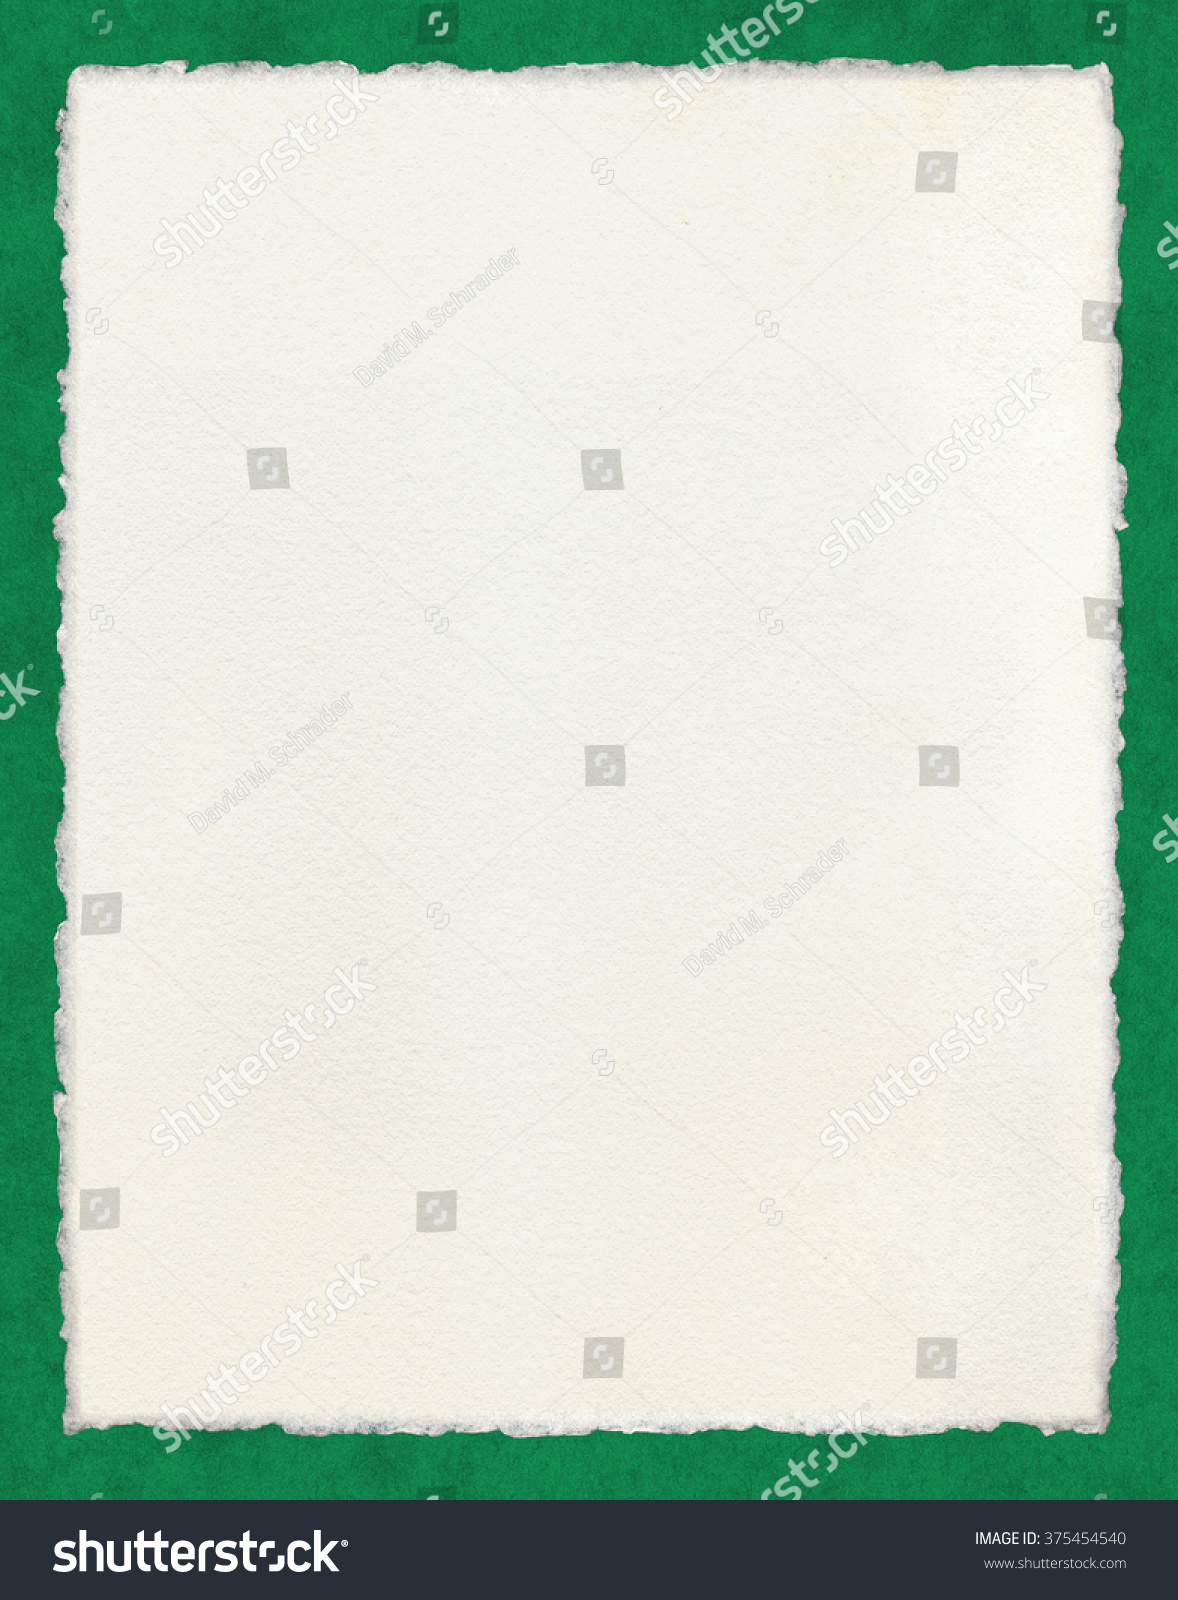 Watercolor Paper With True Deckled Edges On A Green Background. File  Includes A Clipping Path